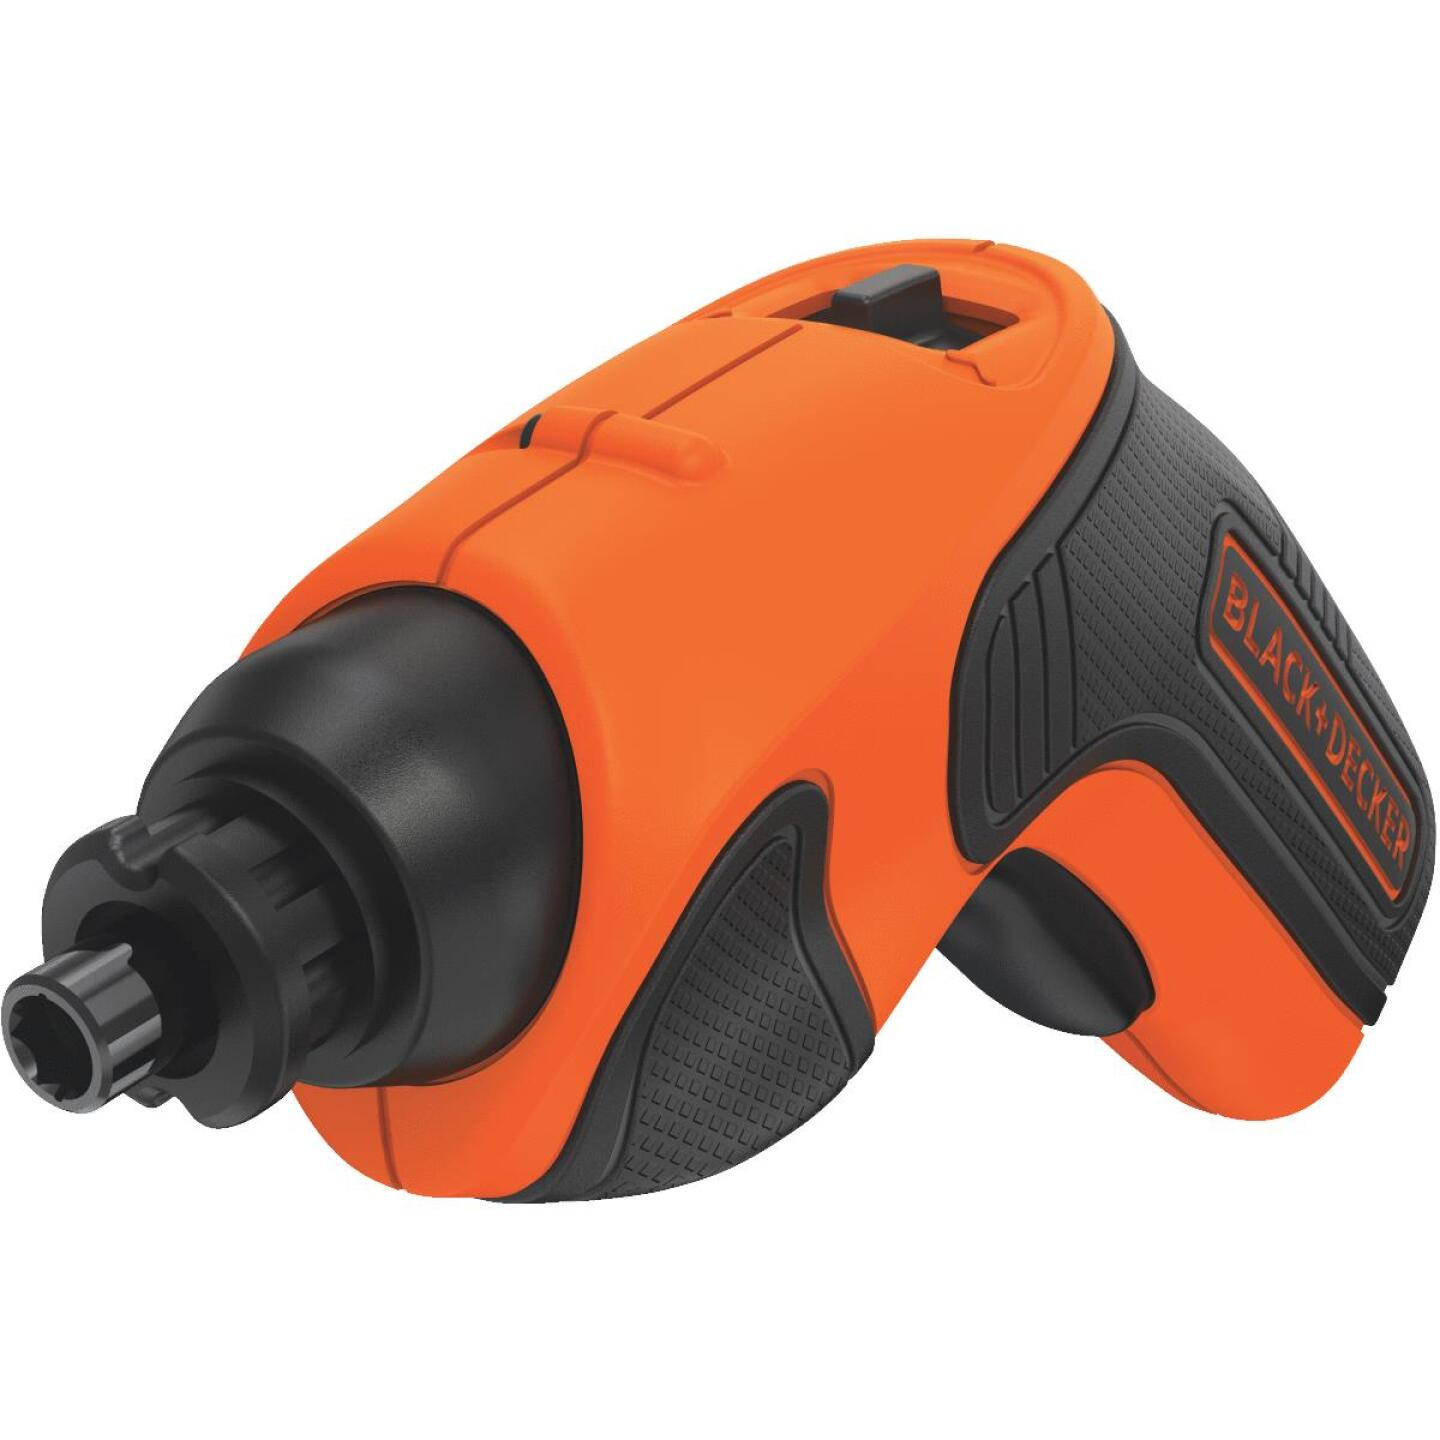 Black & Decker 4-Volt MAX Lithium-Ion 1/4 In. Cordless Screwdriver Image 4